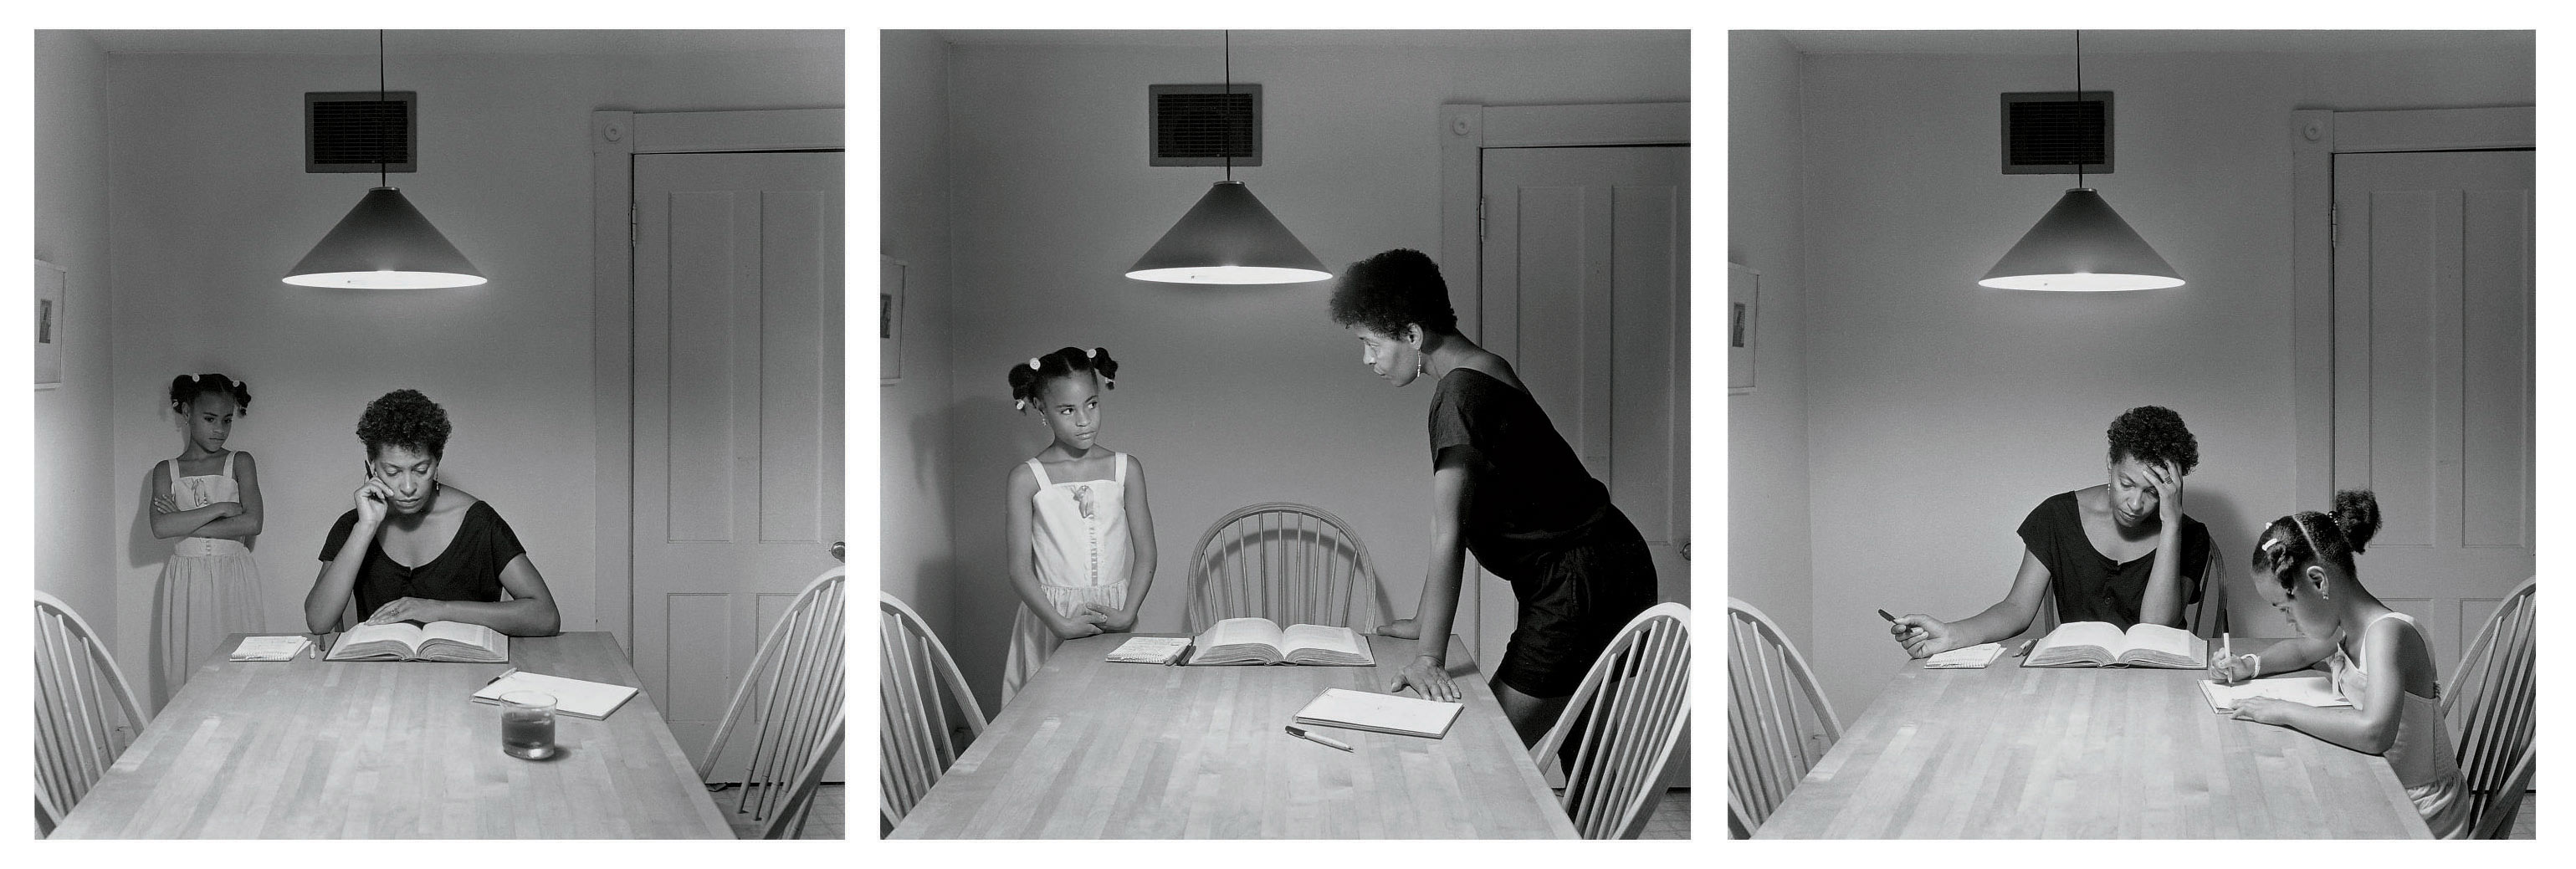 Carrie Mae Weems Kitchen Table Series Carrie mae weems b 1953 untitled 2450 from kitchen table carrie mae weems b 1953 workwithnaturefo